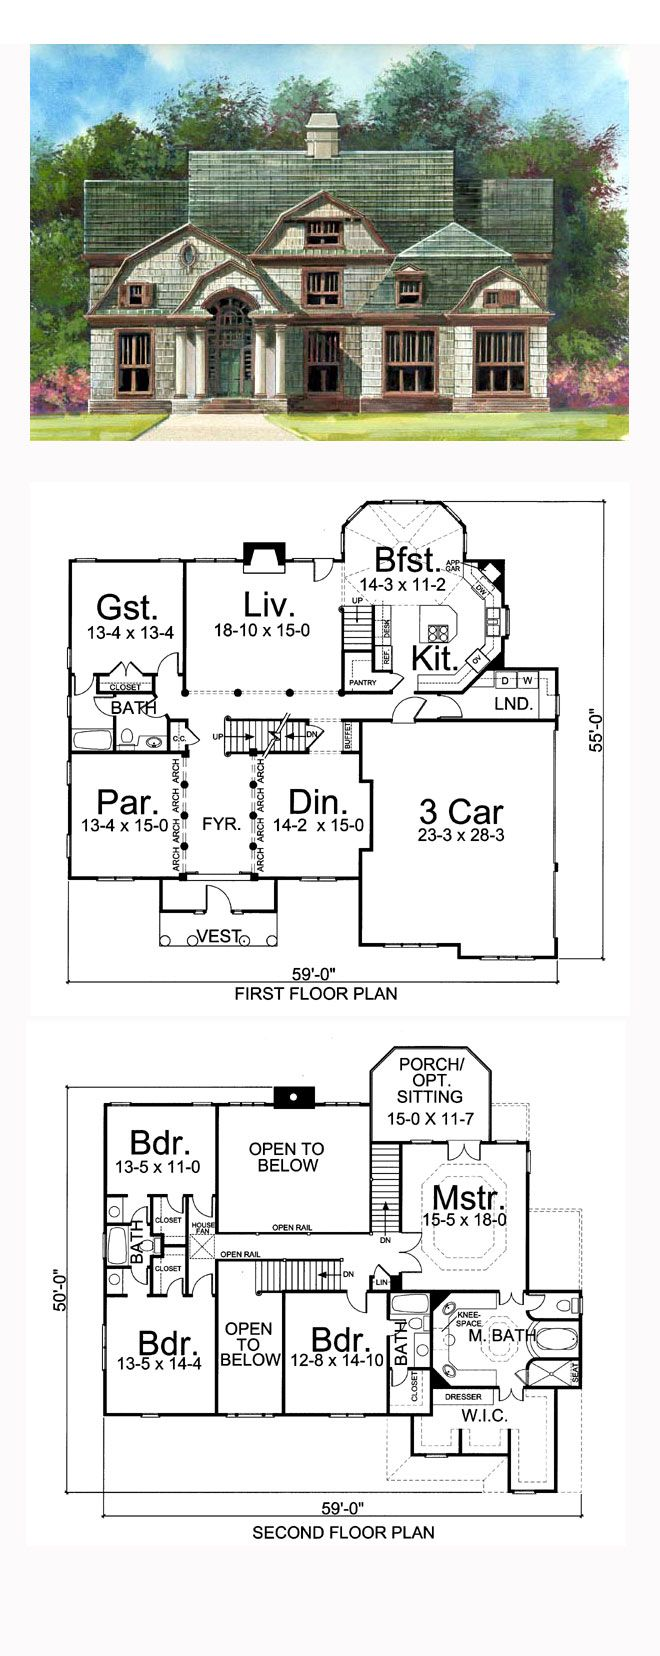 Greek Revival Style House Plan with 5 Bed 4 Bath 3 Car Garage